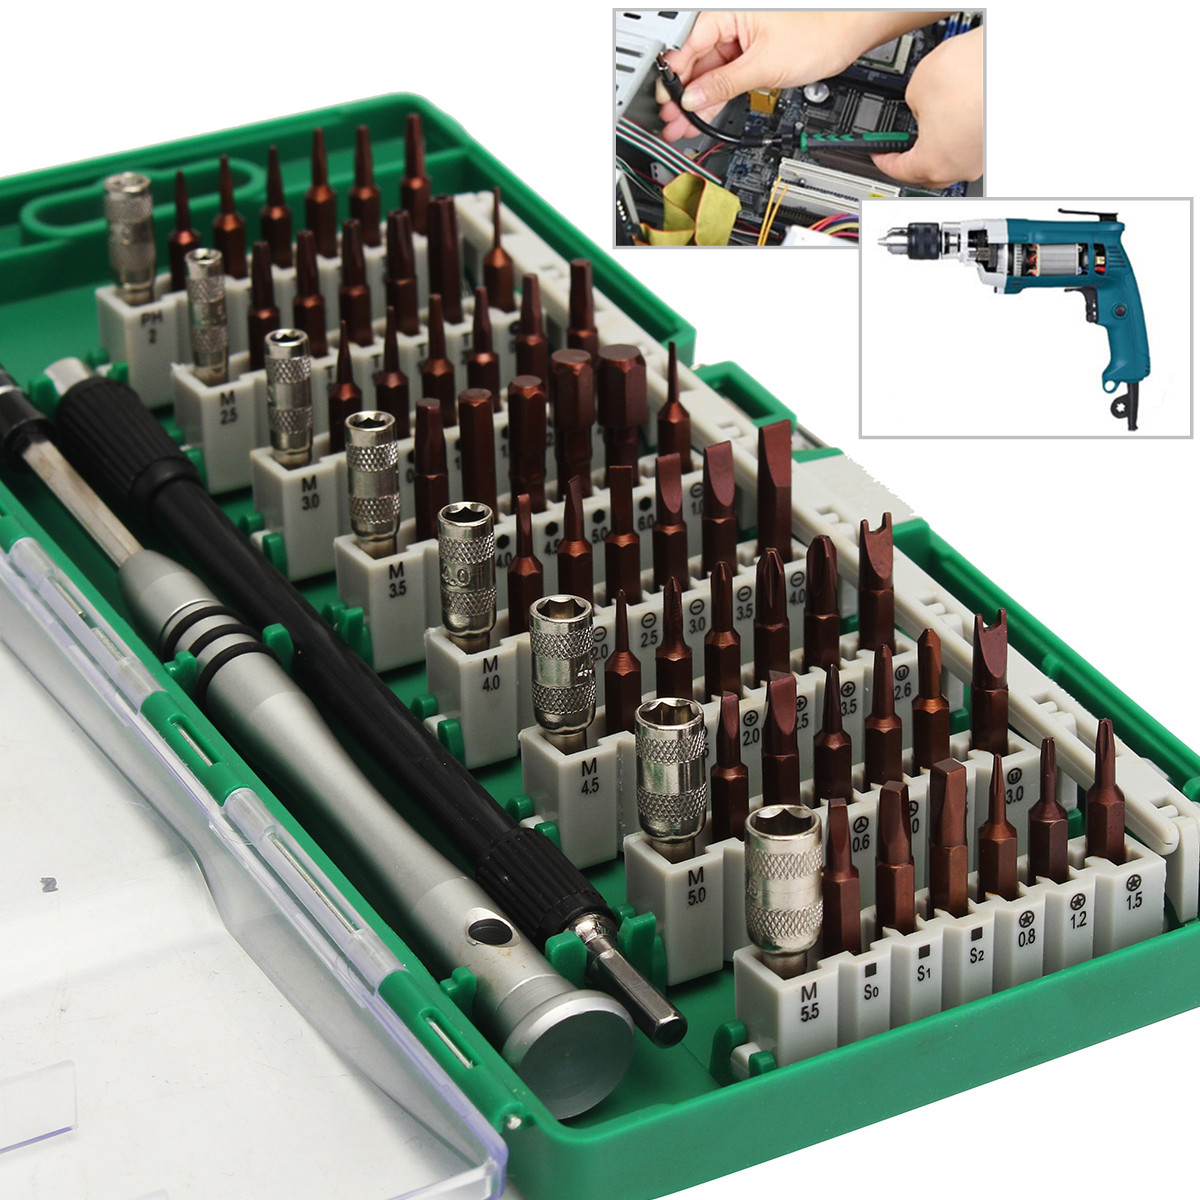 цена на 60 in 1 Magnetic Precision Screwdriver Set Repair Opening Tools Kit For Cell Phone Laptop Home Appliance Computer Camera